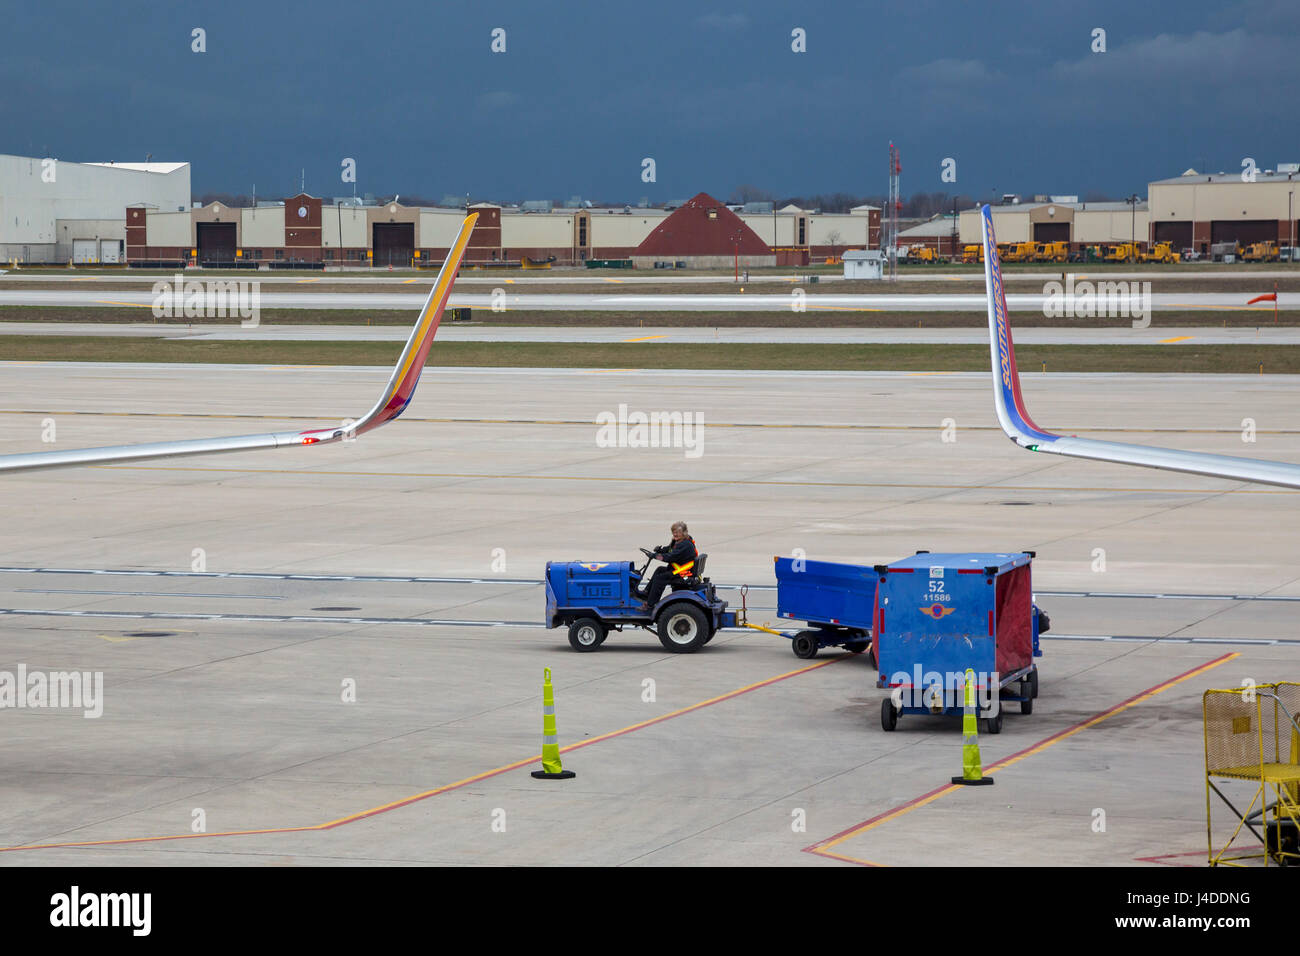 Detroit, Michigan - A Southwest Airlines baggage handler drives luggage carts as a storm threatens at Detroit Metro - Stock Image